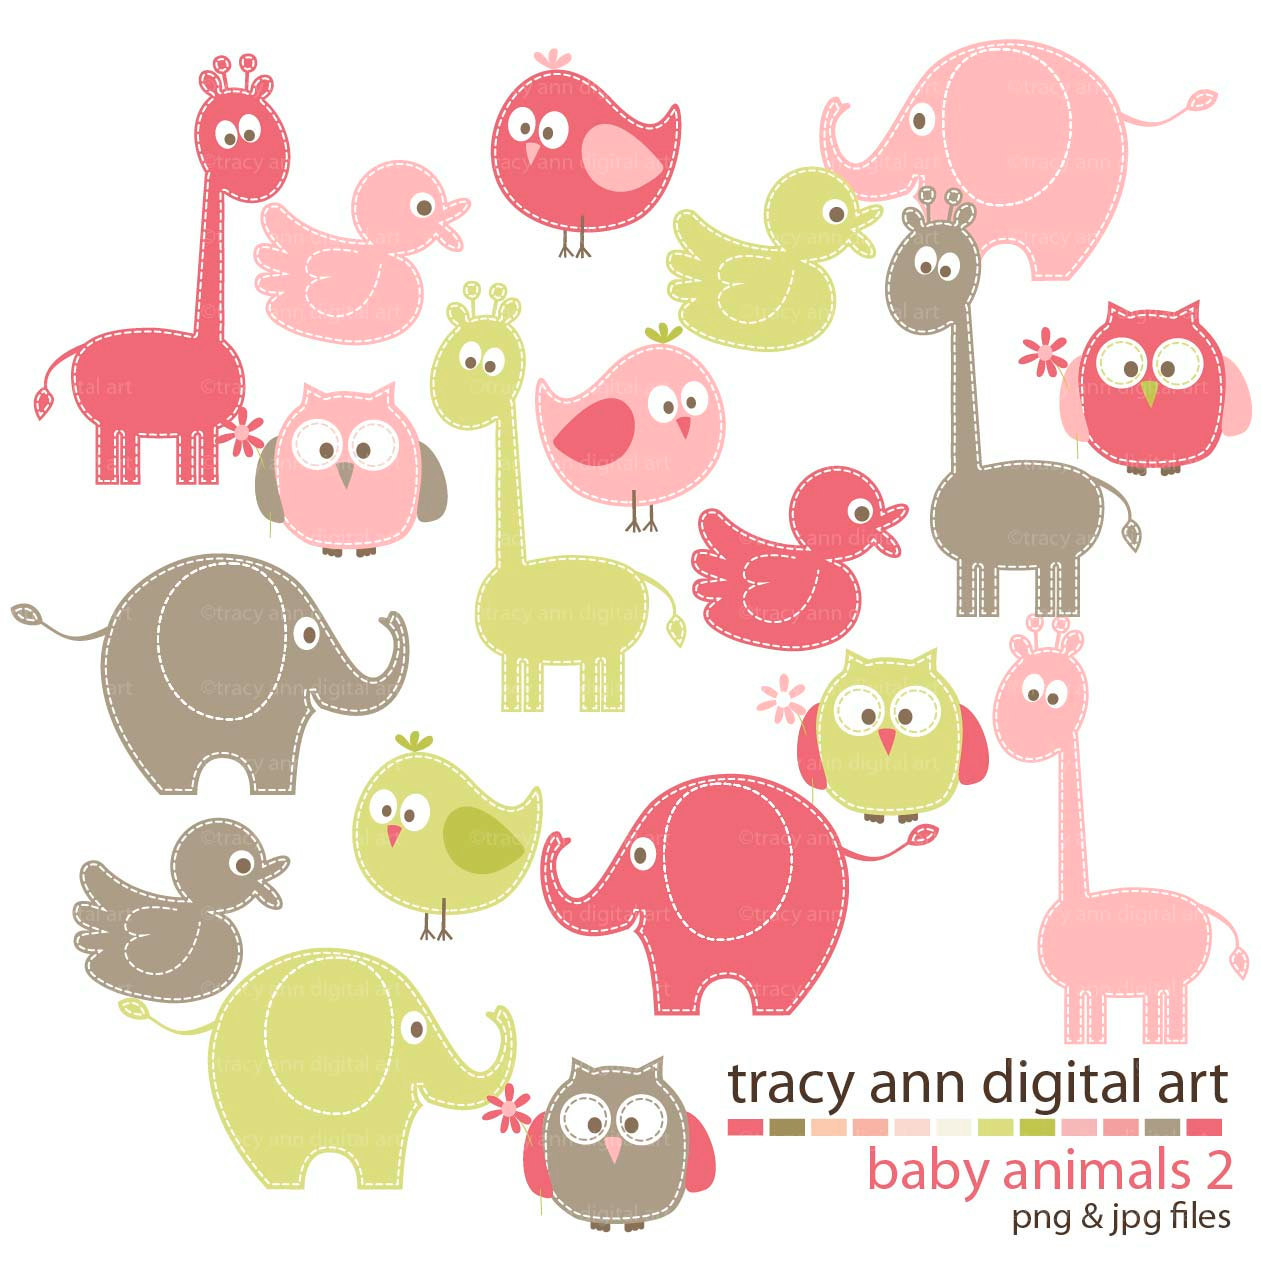 Baby girl animals clipart jpg transparent download Free baby animals clipart - ClipartFest jpg transparent download